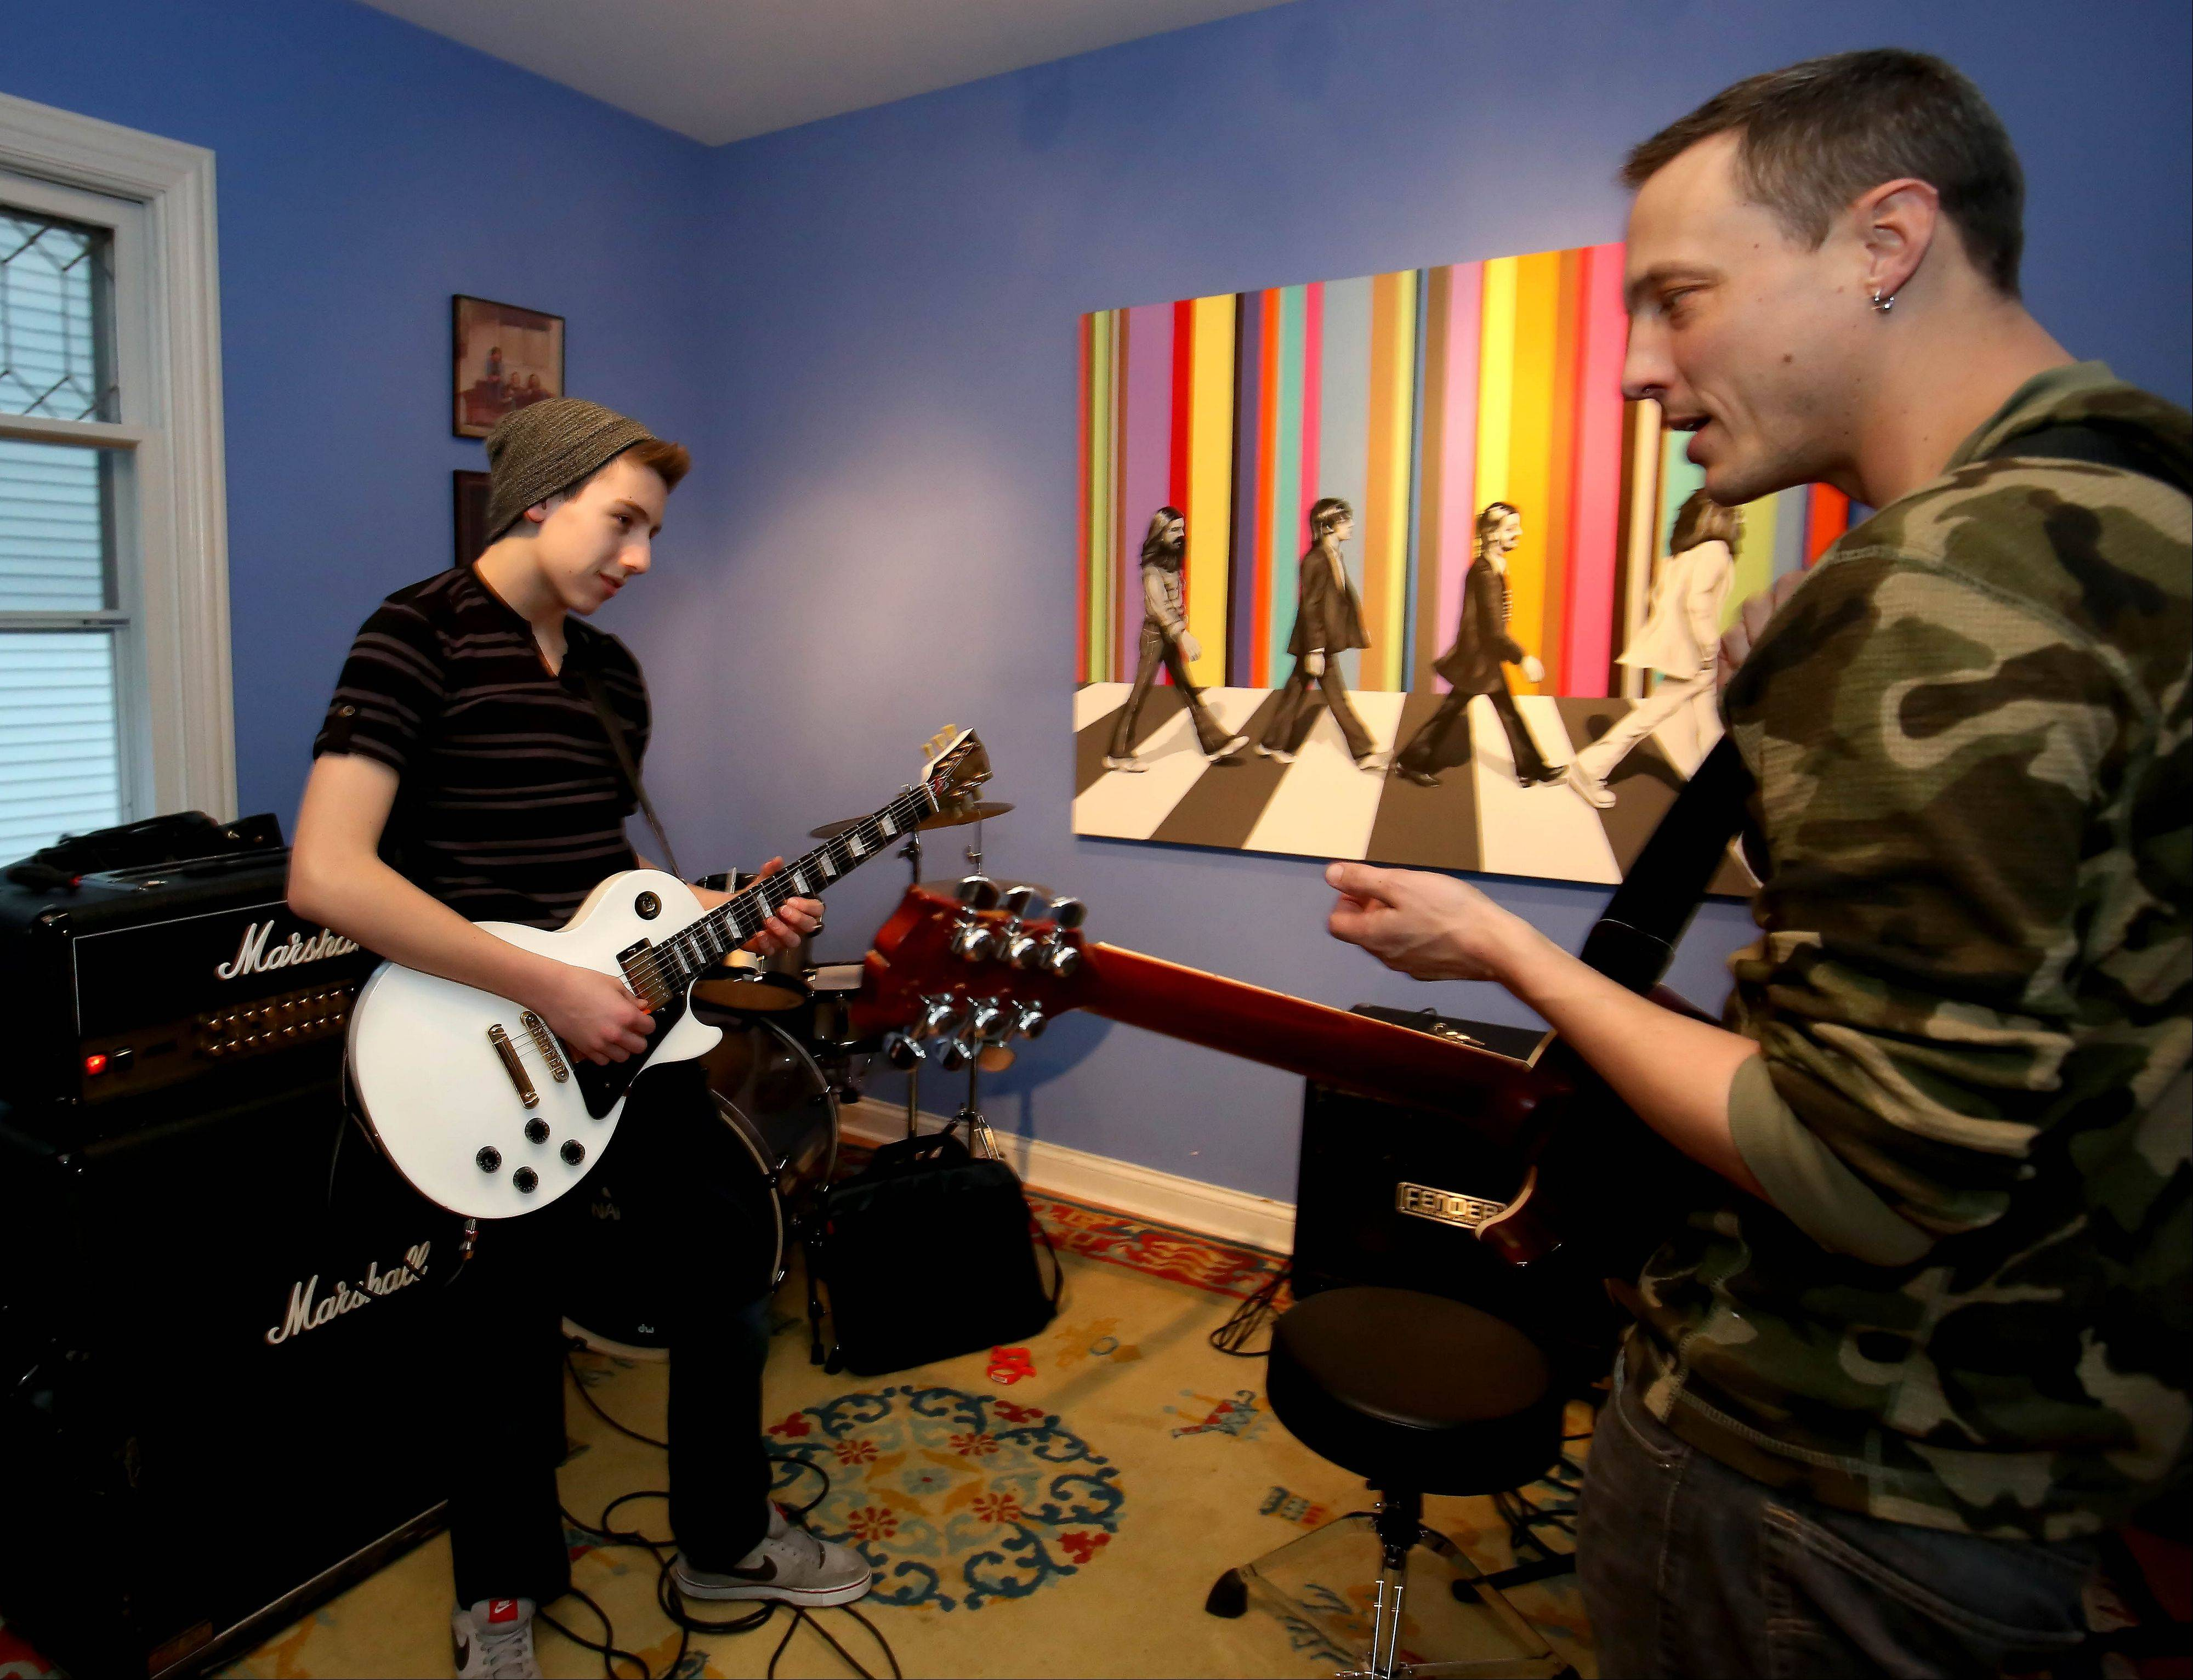 Justin Walsh, 15, of Naperville gets a few tips from instructor Danni Schaper, right, at the School of Rock in Naperville.